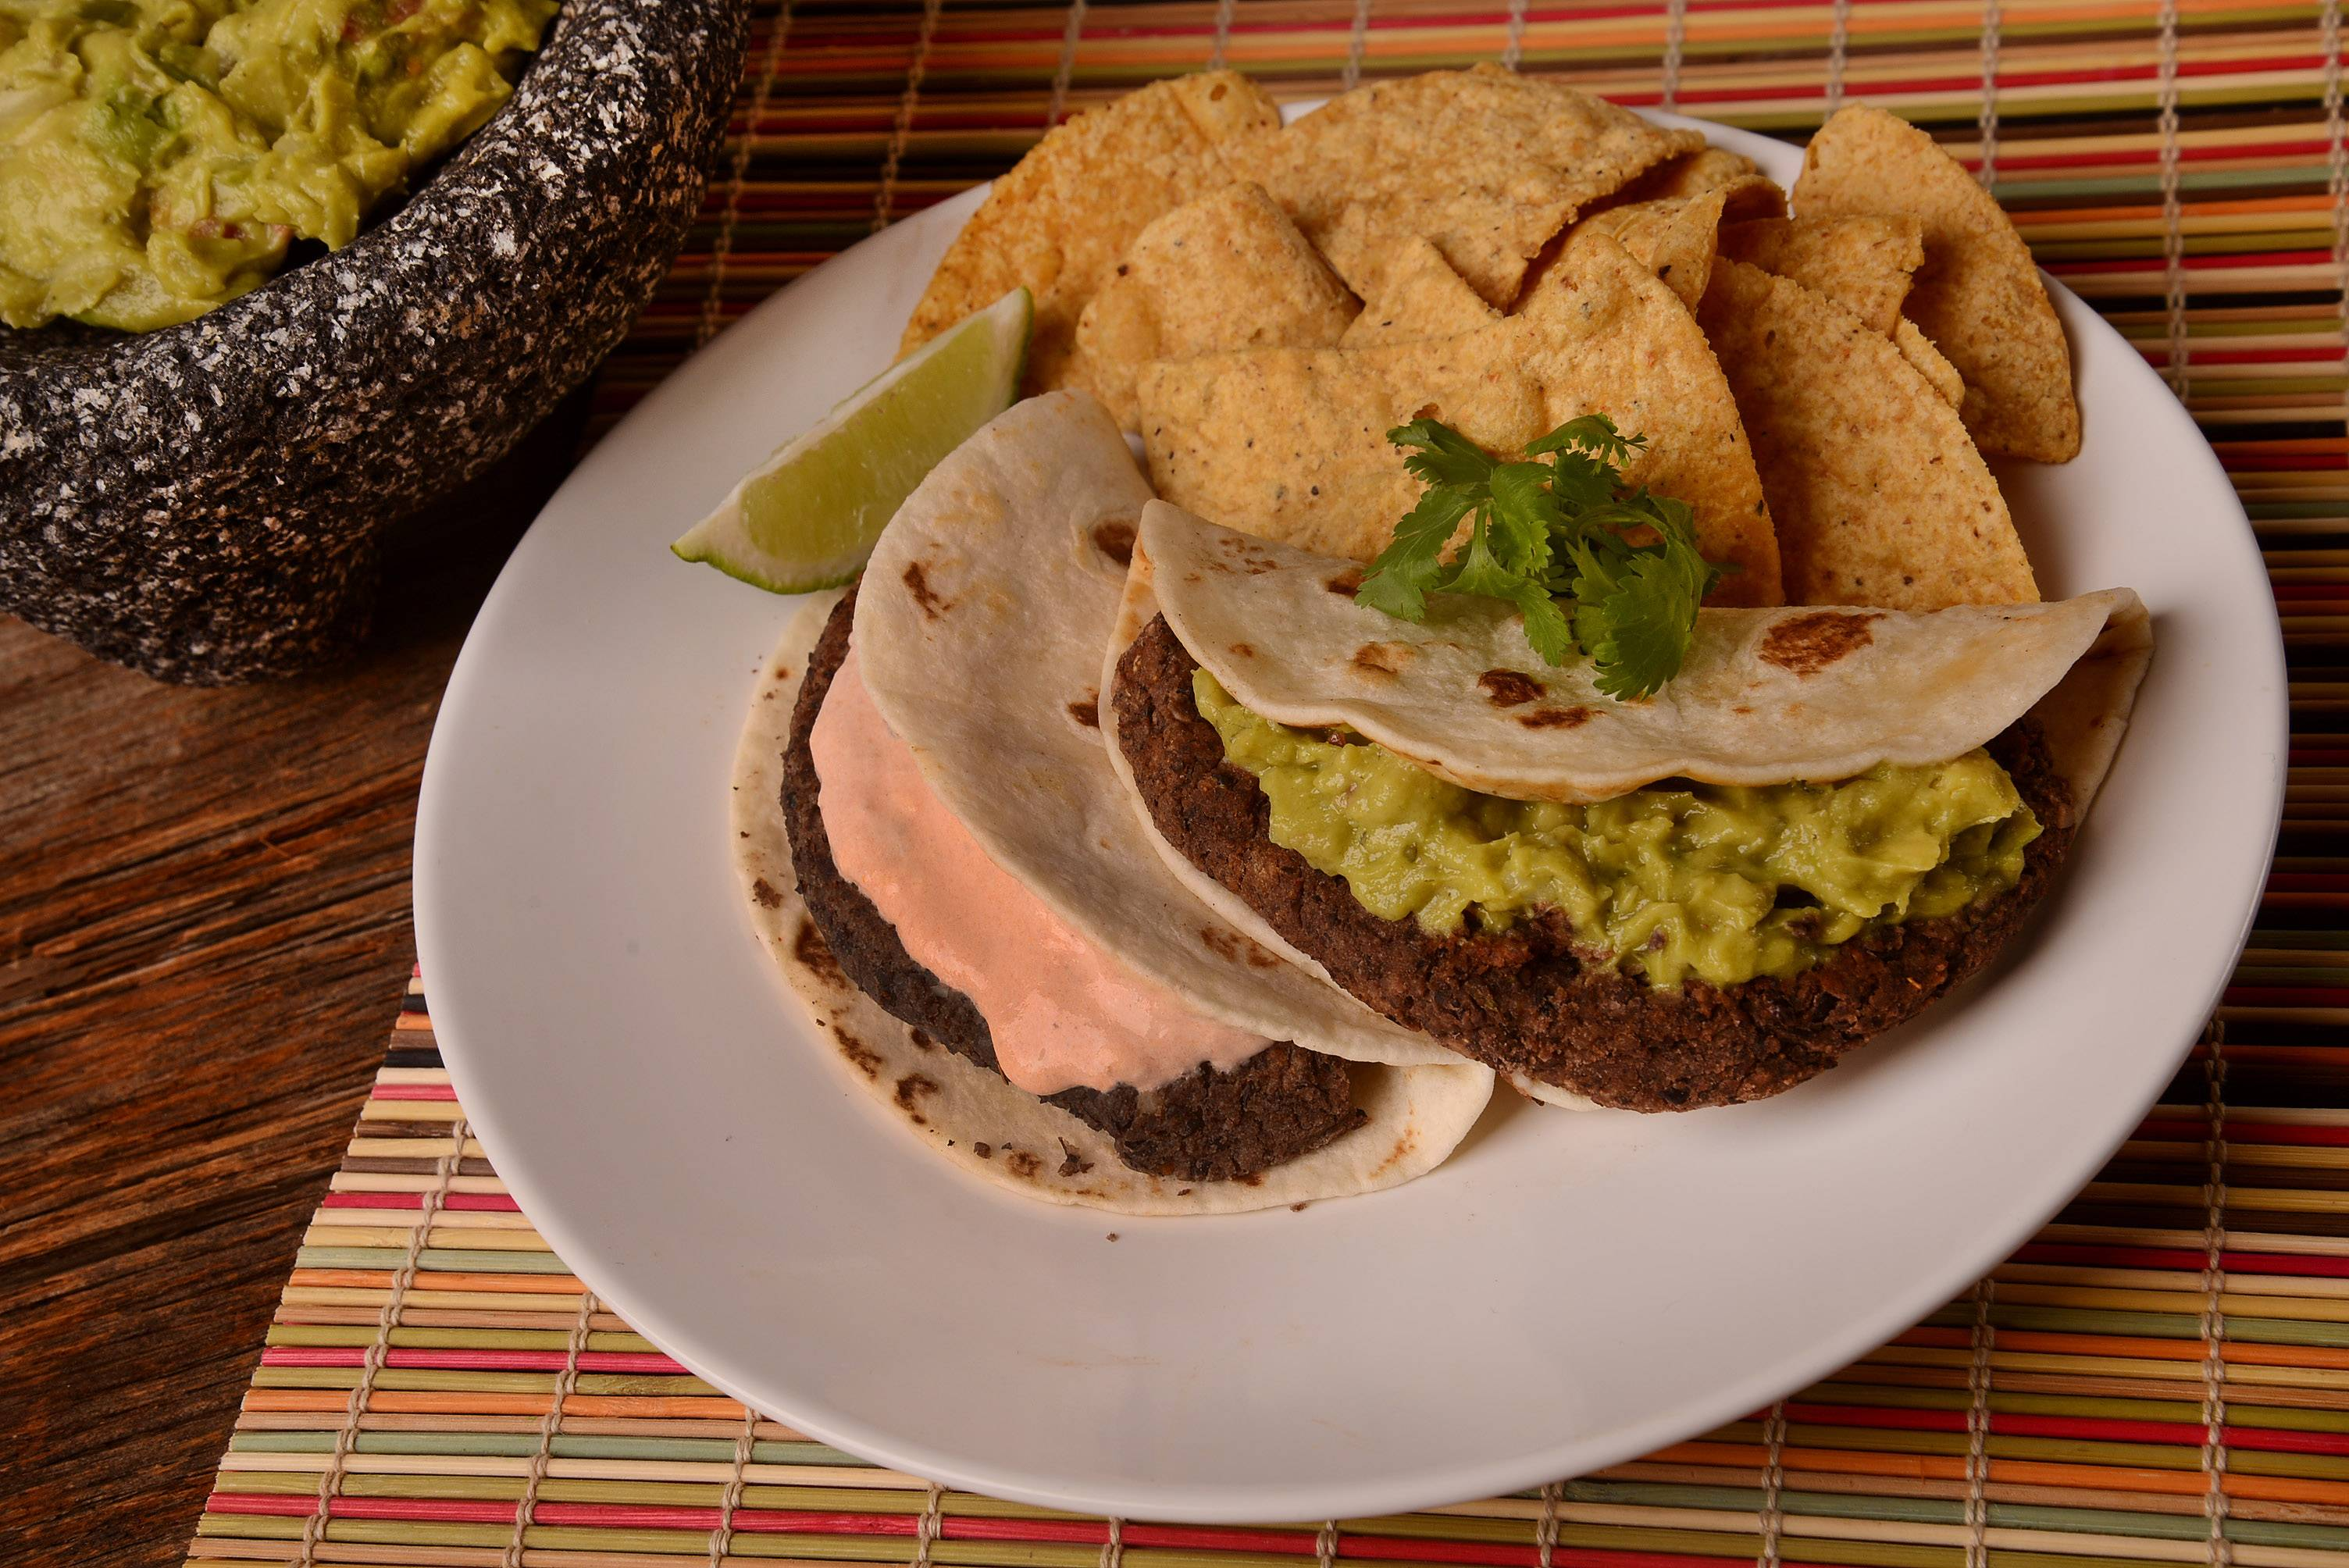 For a vegetarian spin on burgers, try these mildly spiced black bean patties nestled between tortillas. Top with guacamole or creamy salsa.